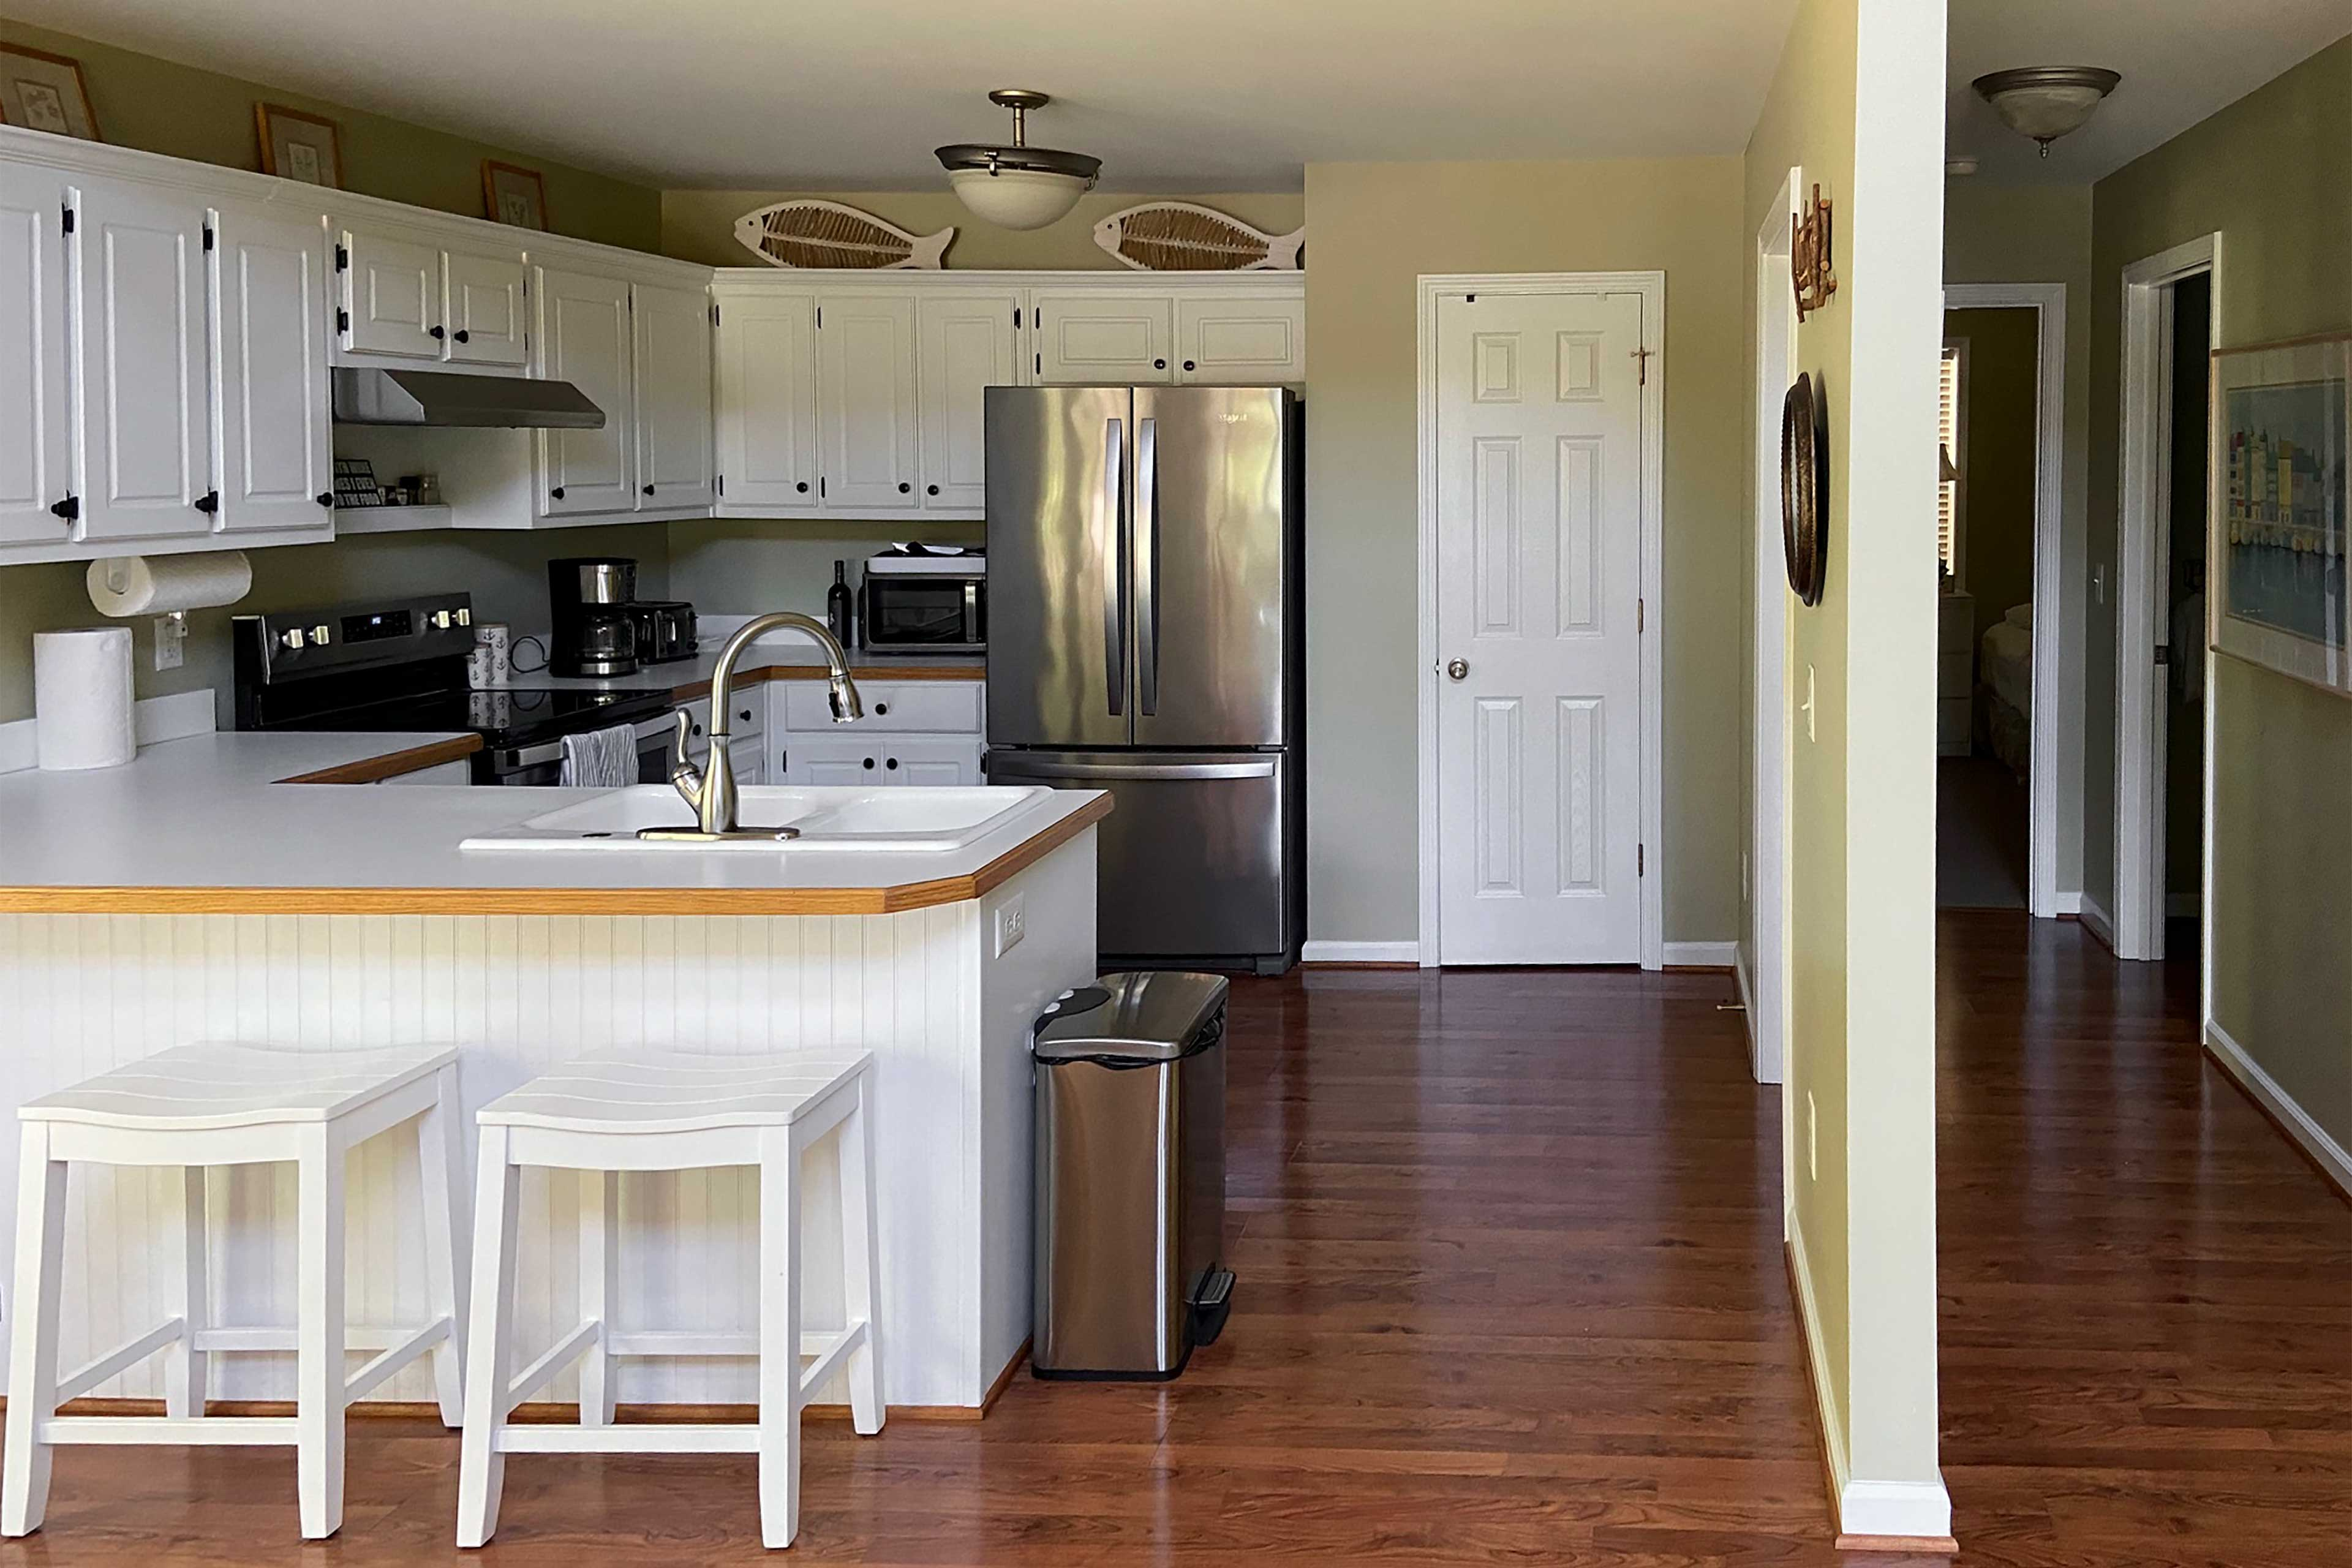 Kitchen | Fully Equipped